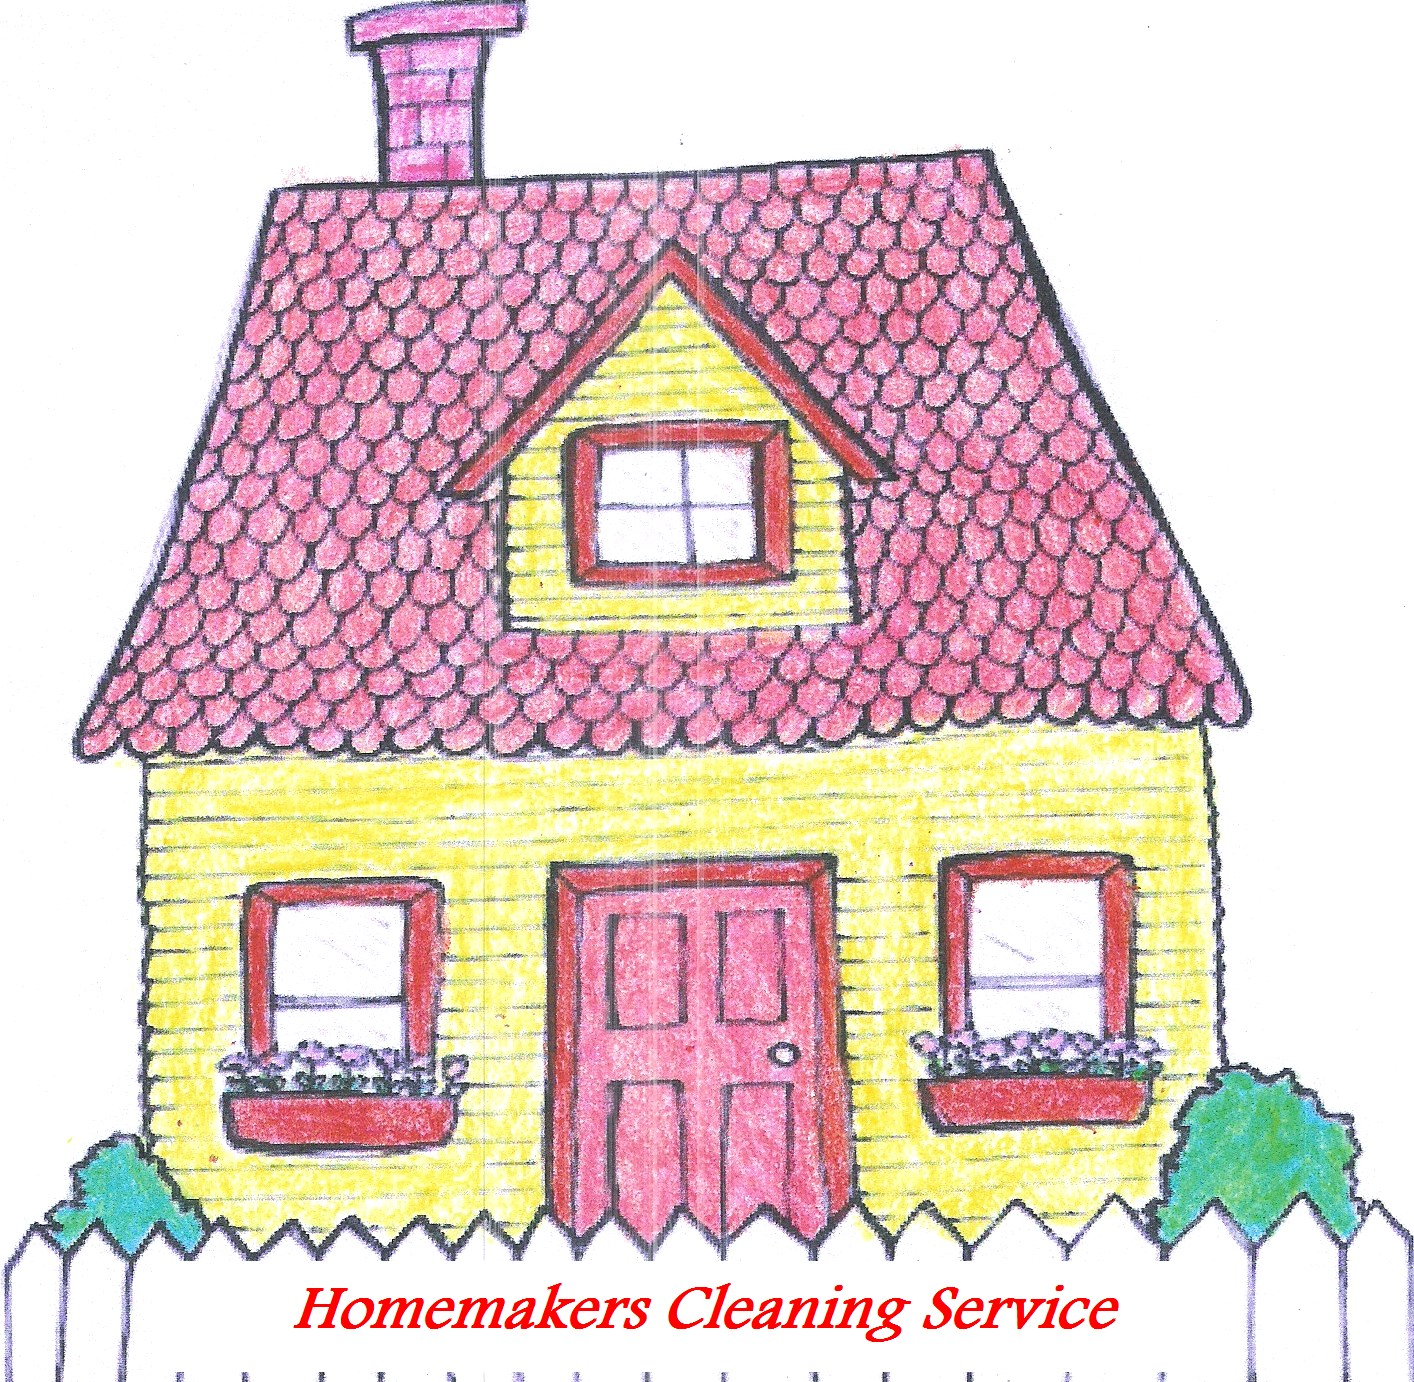 Homemakers Cleaning Service